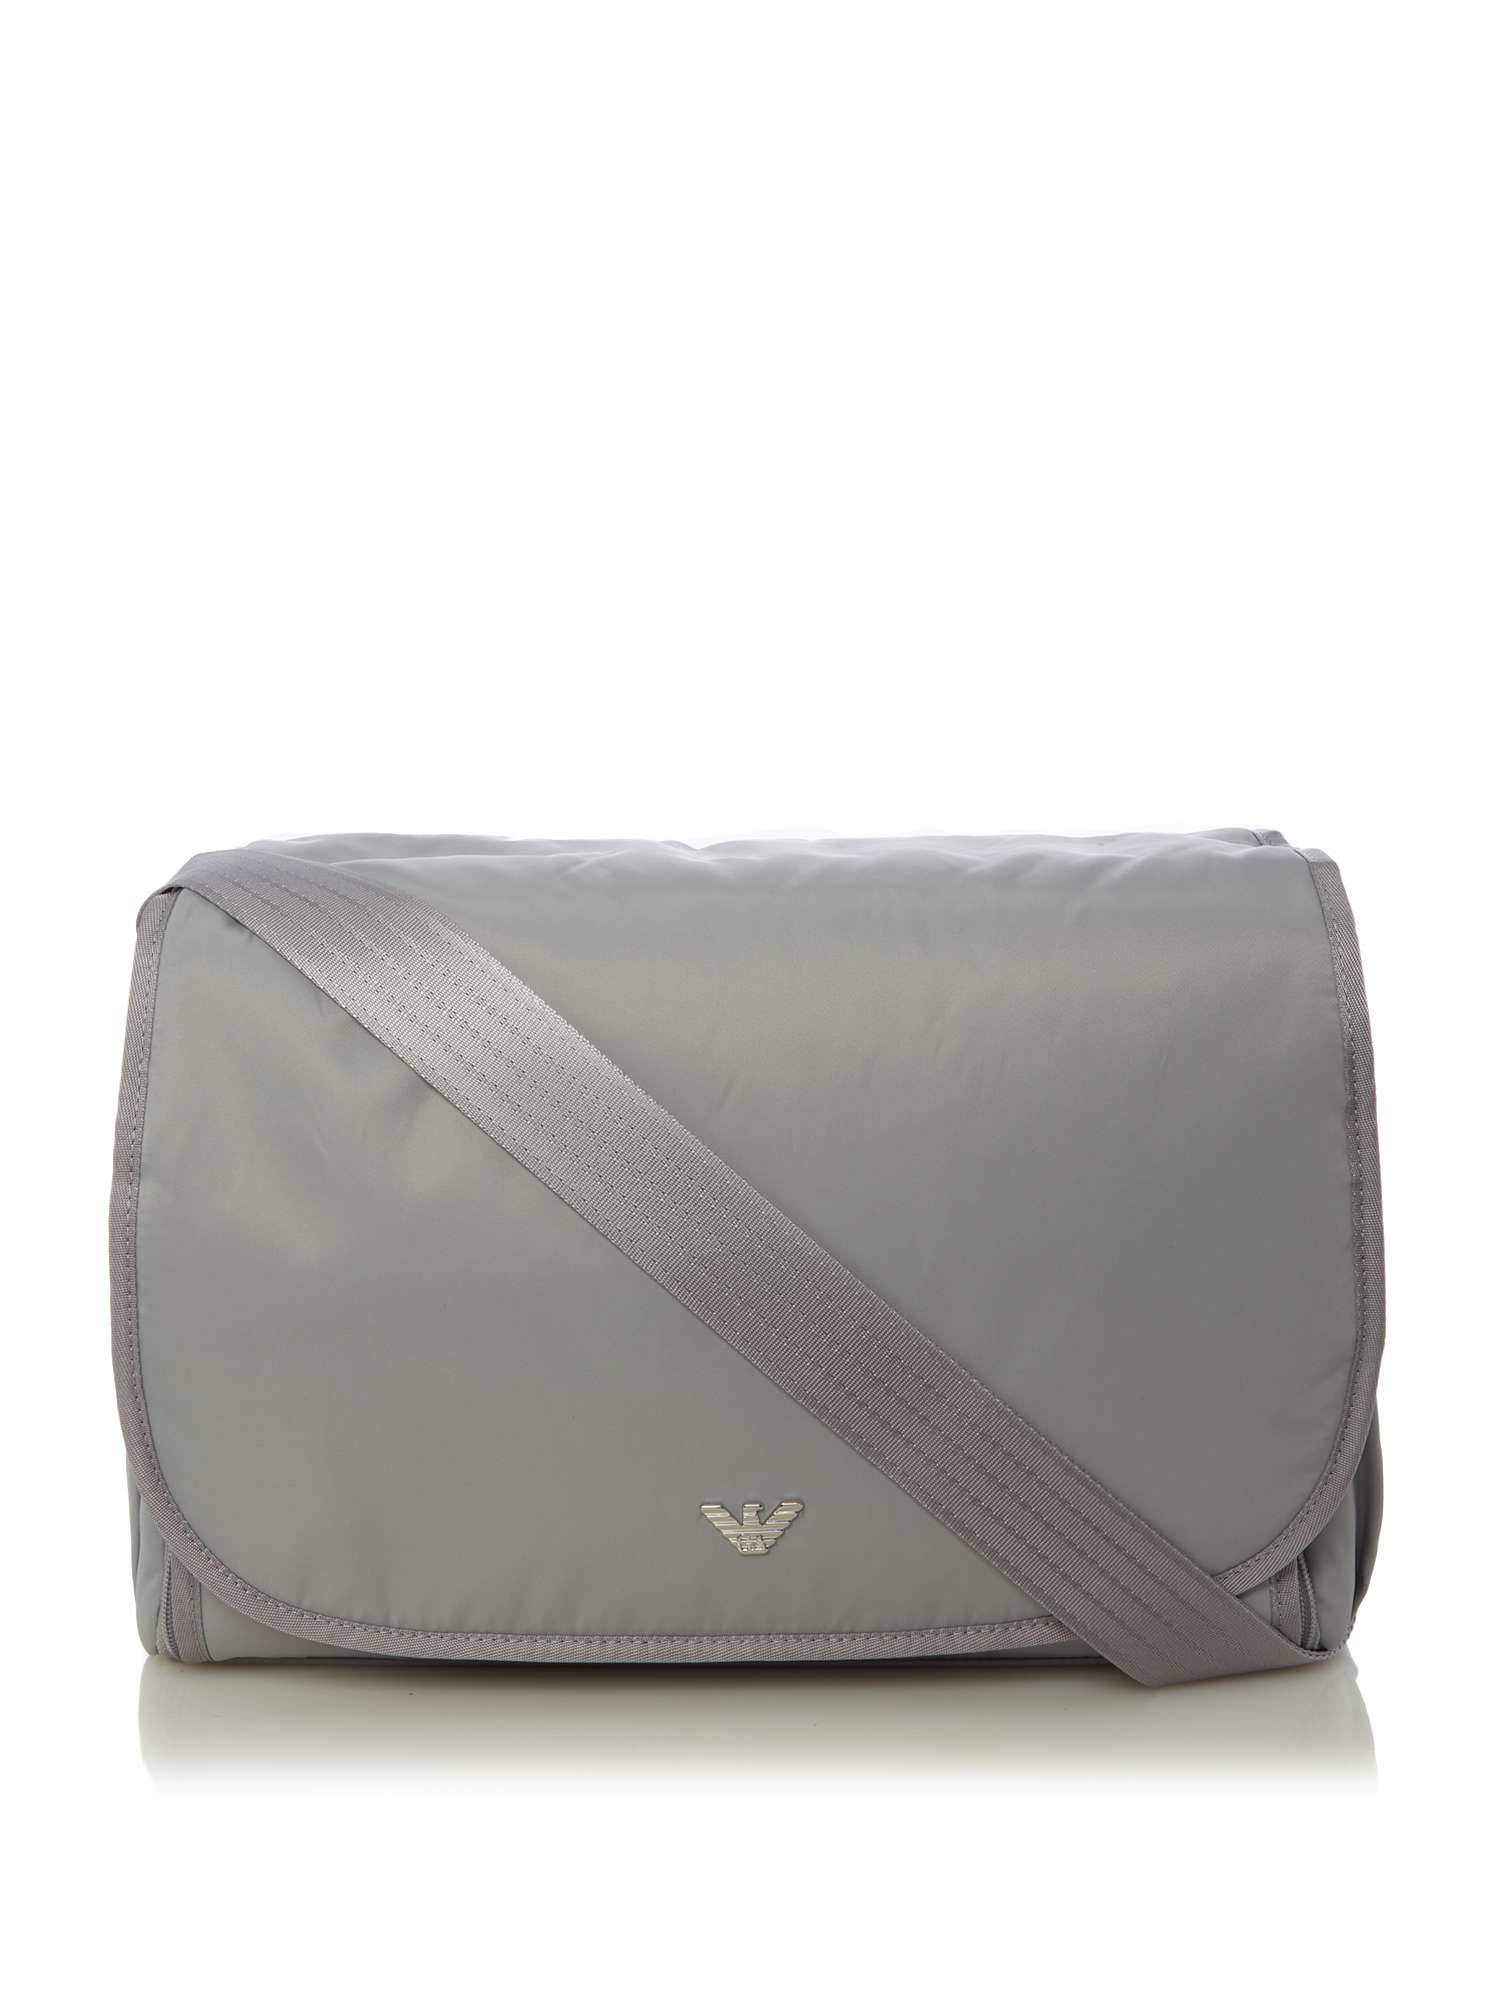 578f613f1e0 Armani Junior Baby Changing Bag - House of Fraser